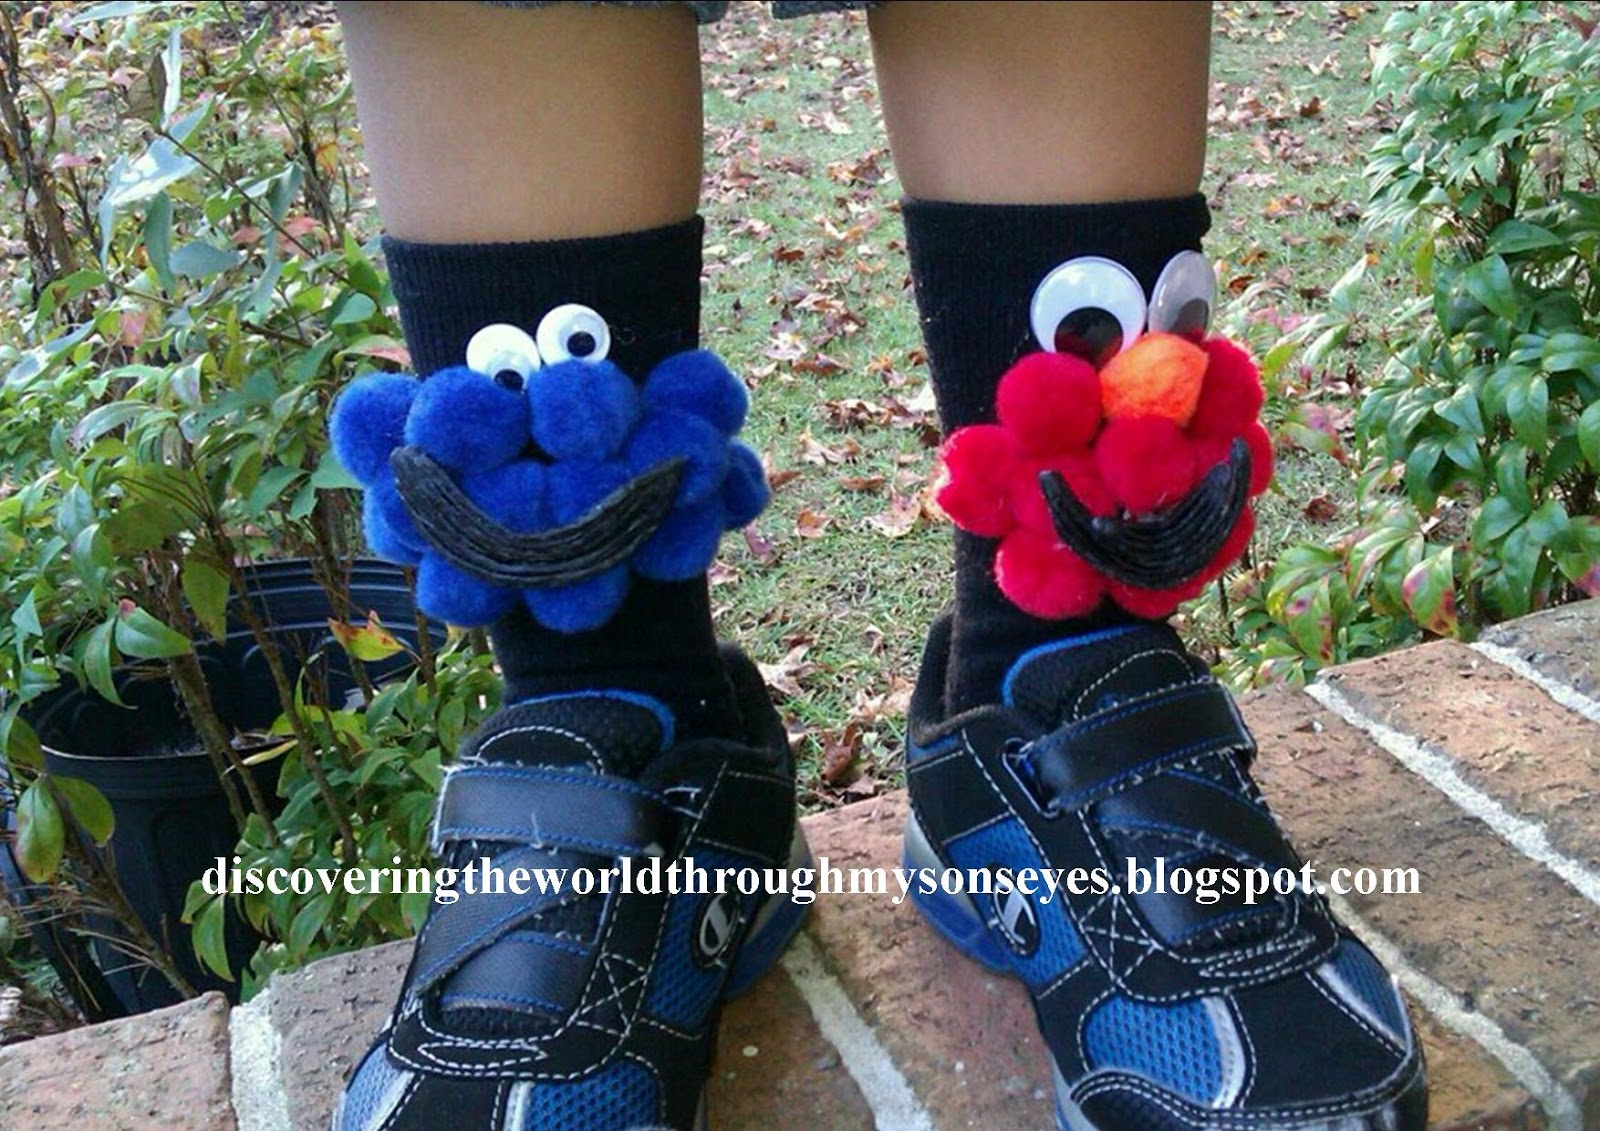 With crazy socks would love to hear your comments about our crazy